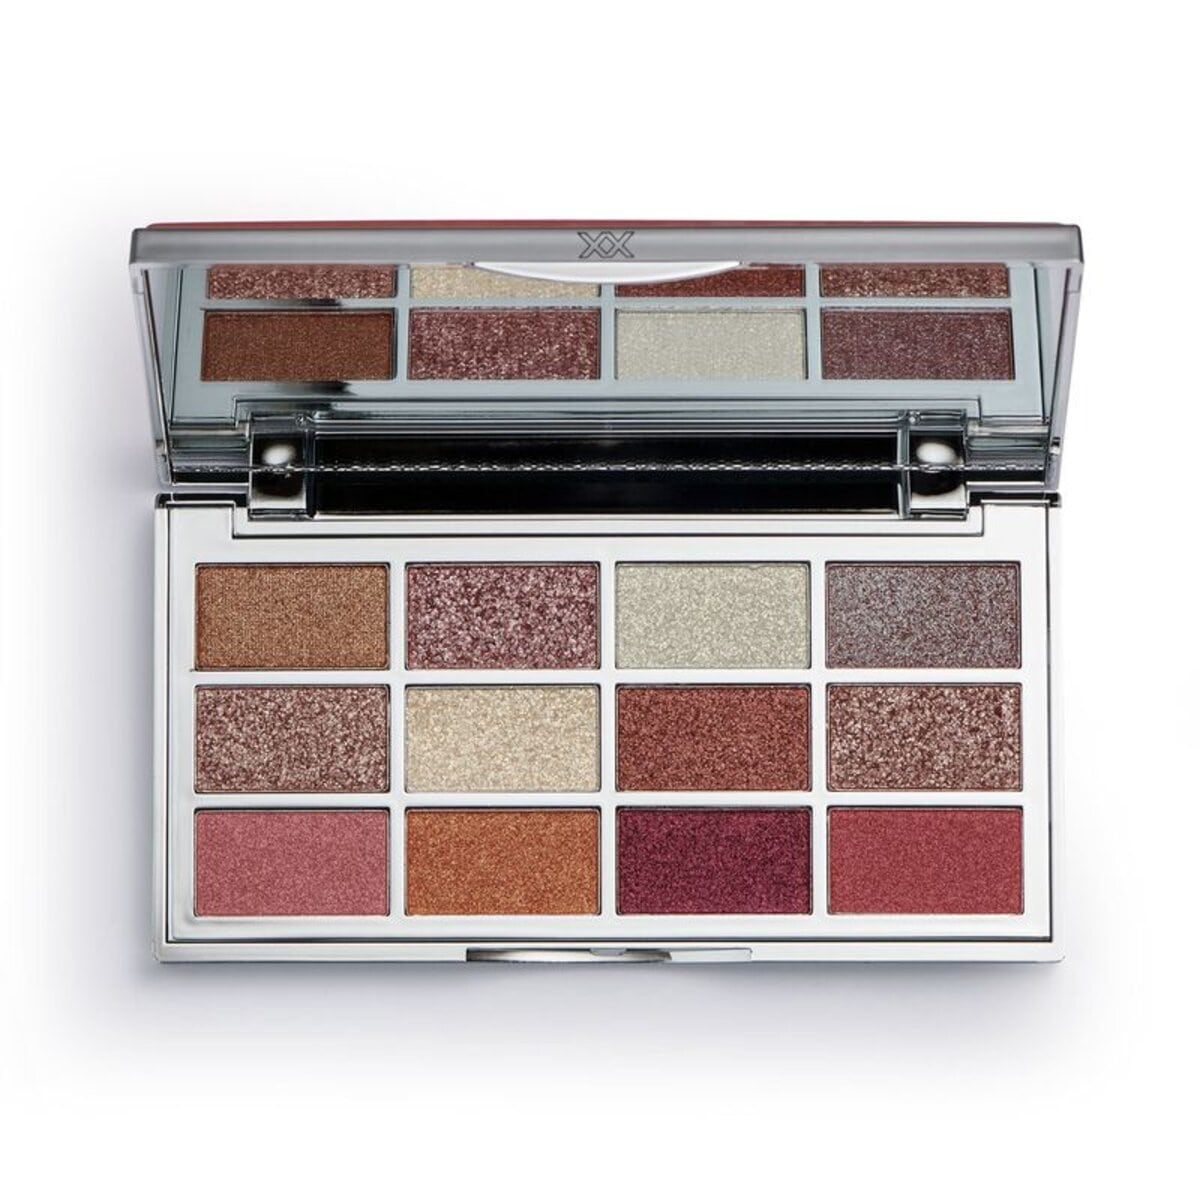 CRYSTALXX SHADOW PALETTE QUARTZ - XX Revolution